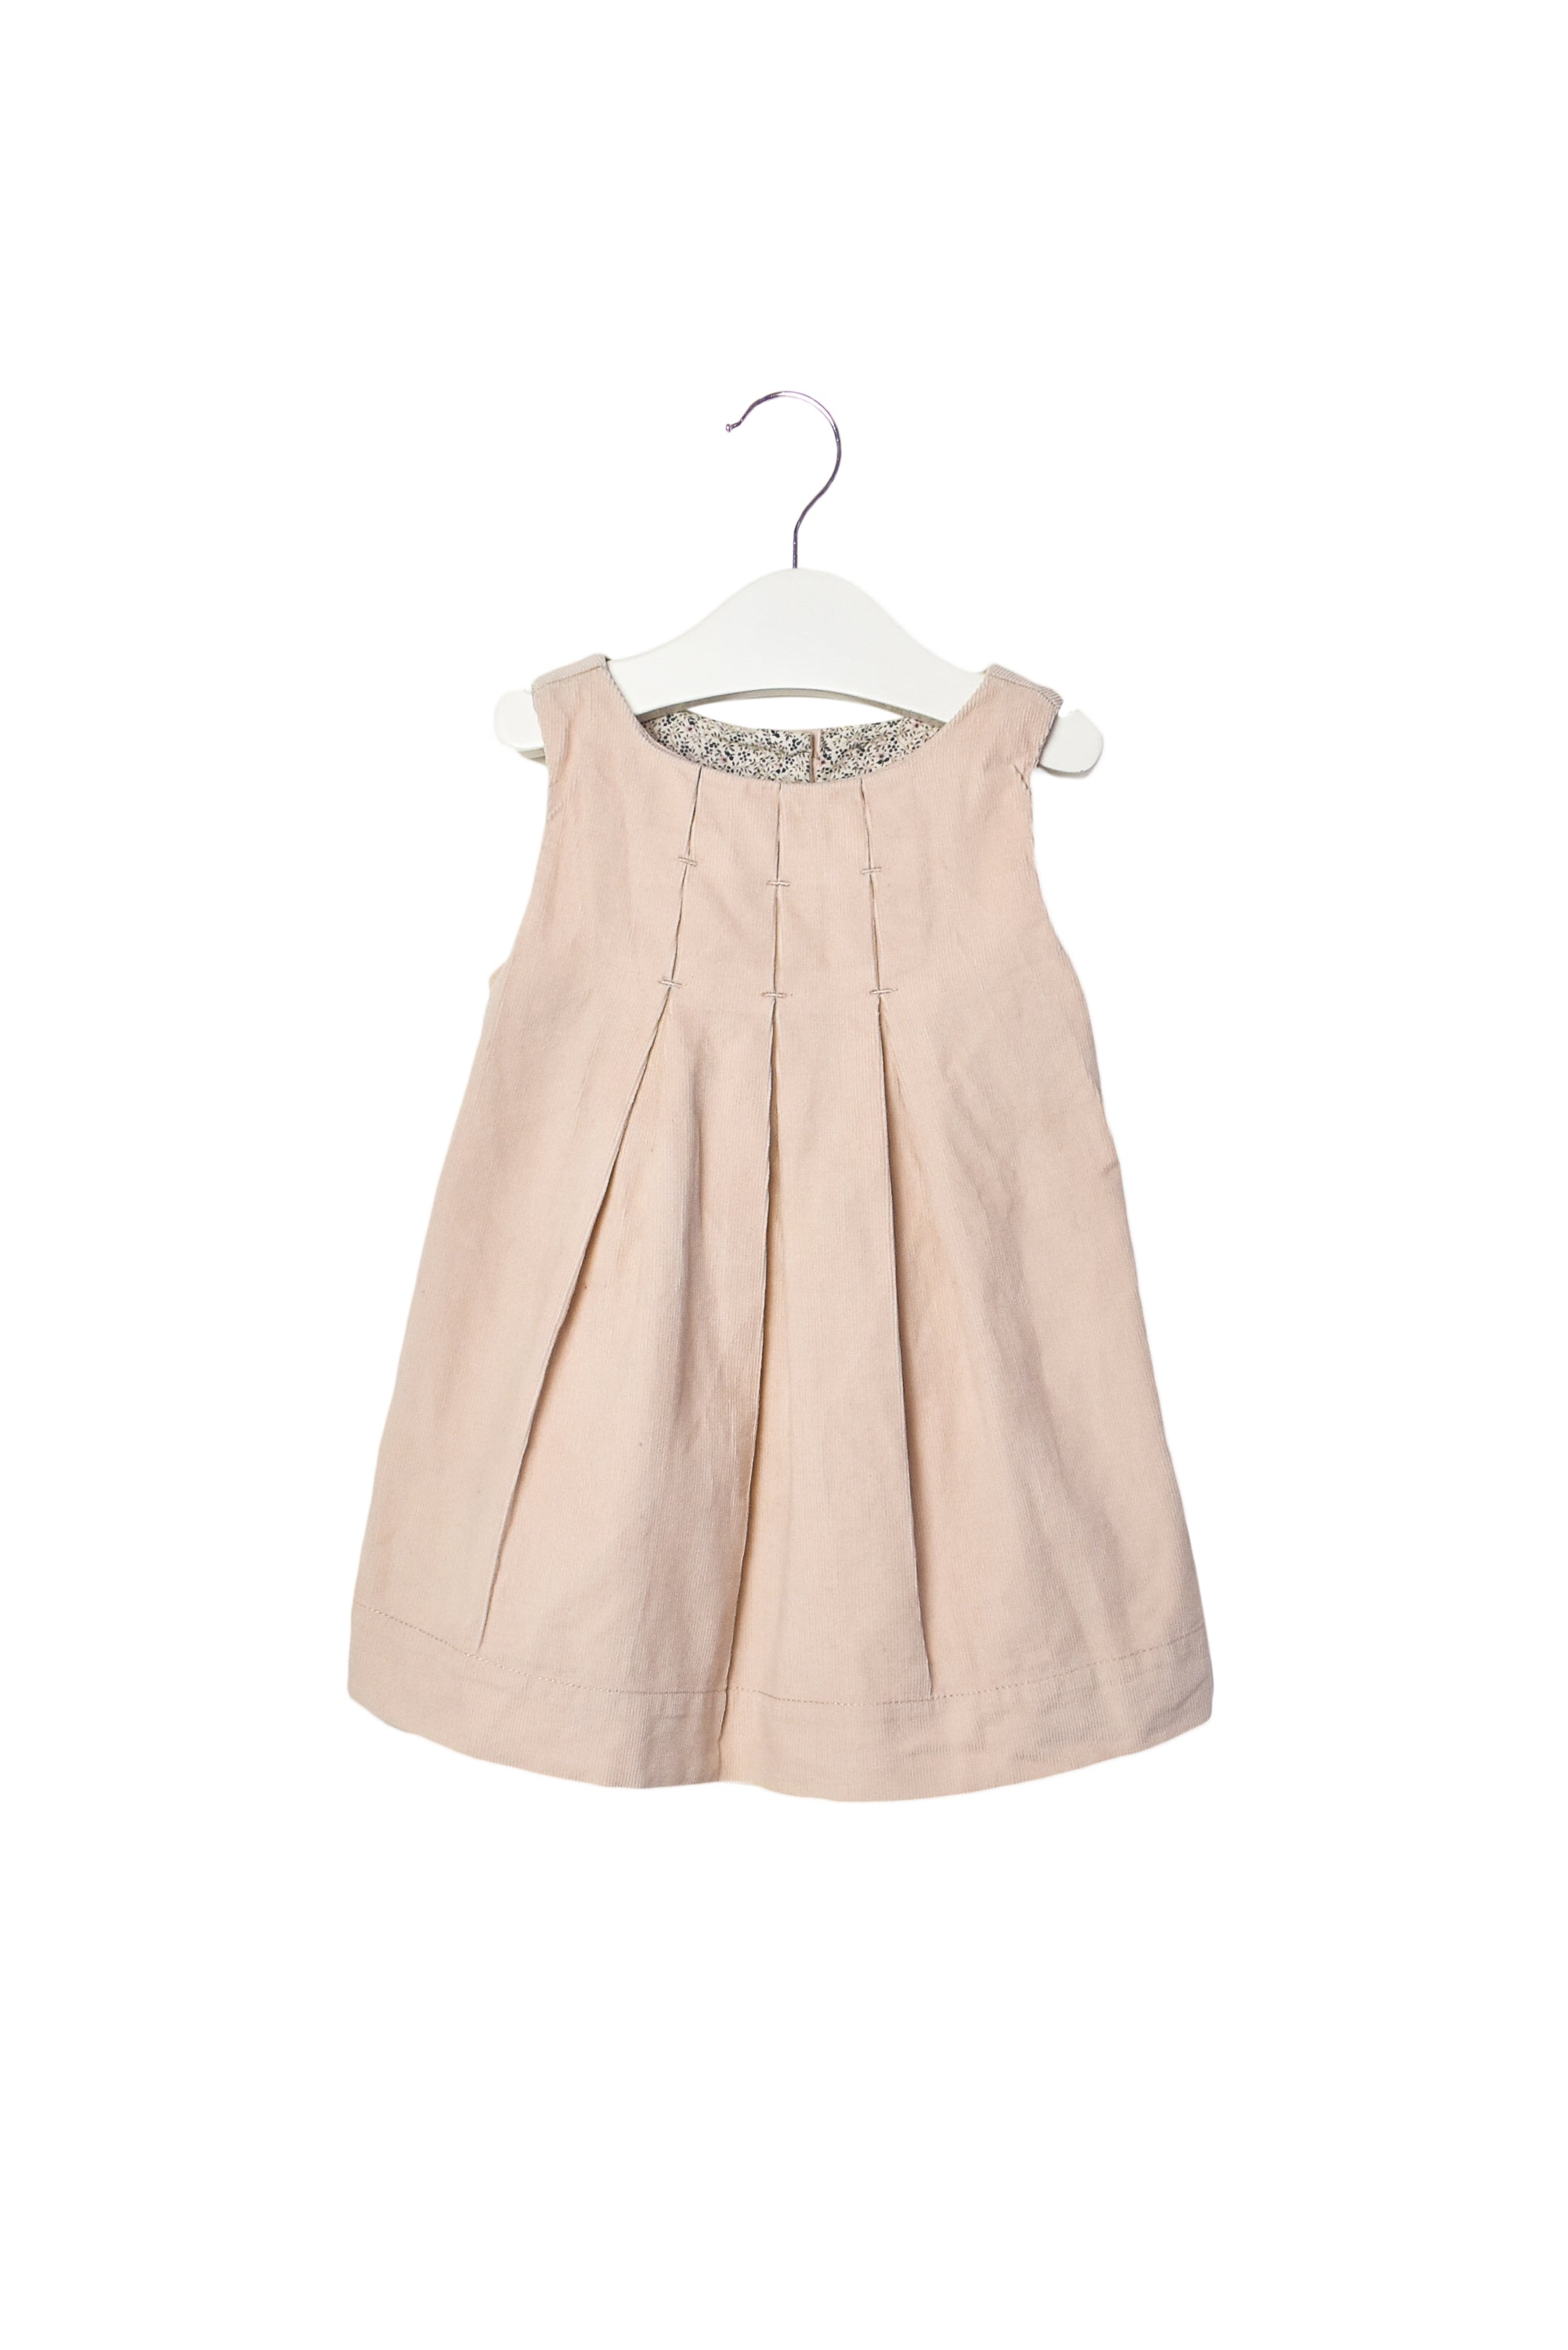 10006752 No Brand Baby~Dress 6-12M at Retykle